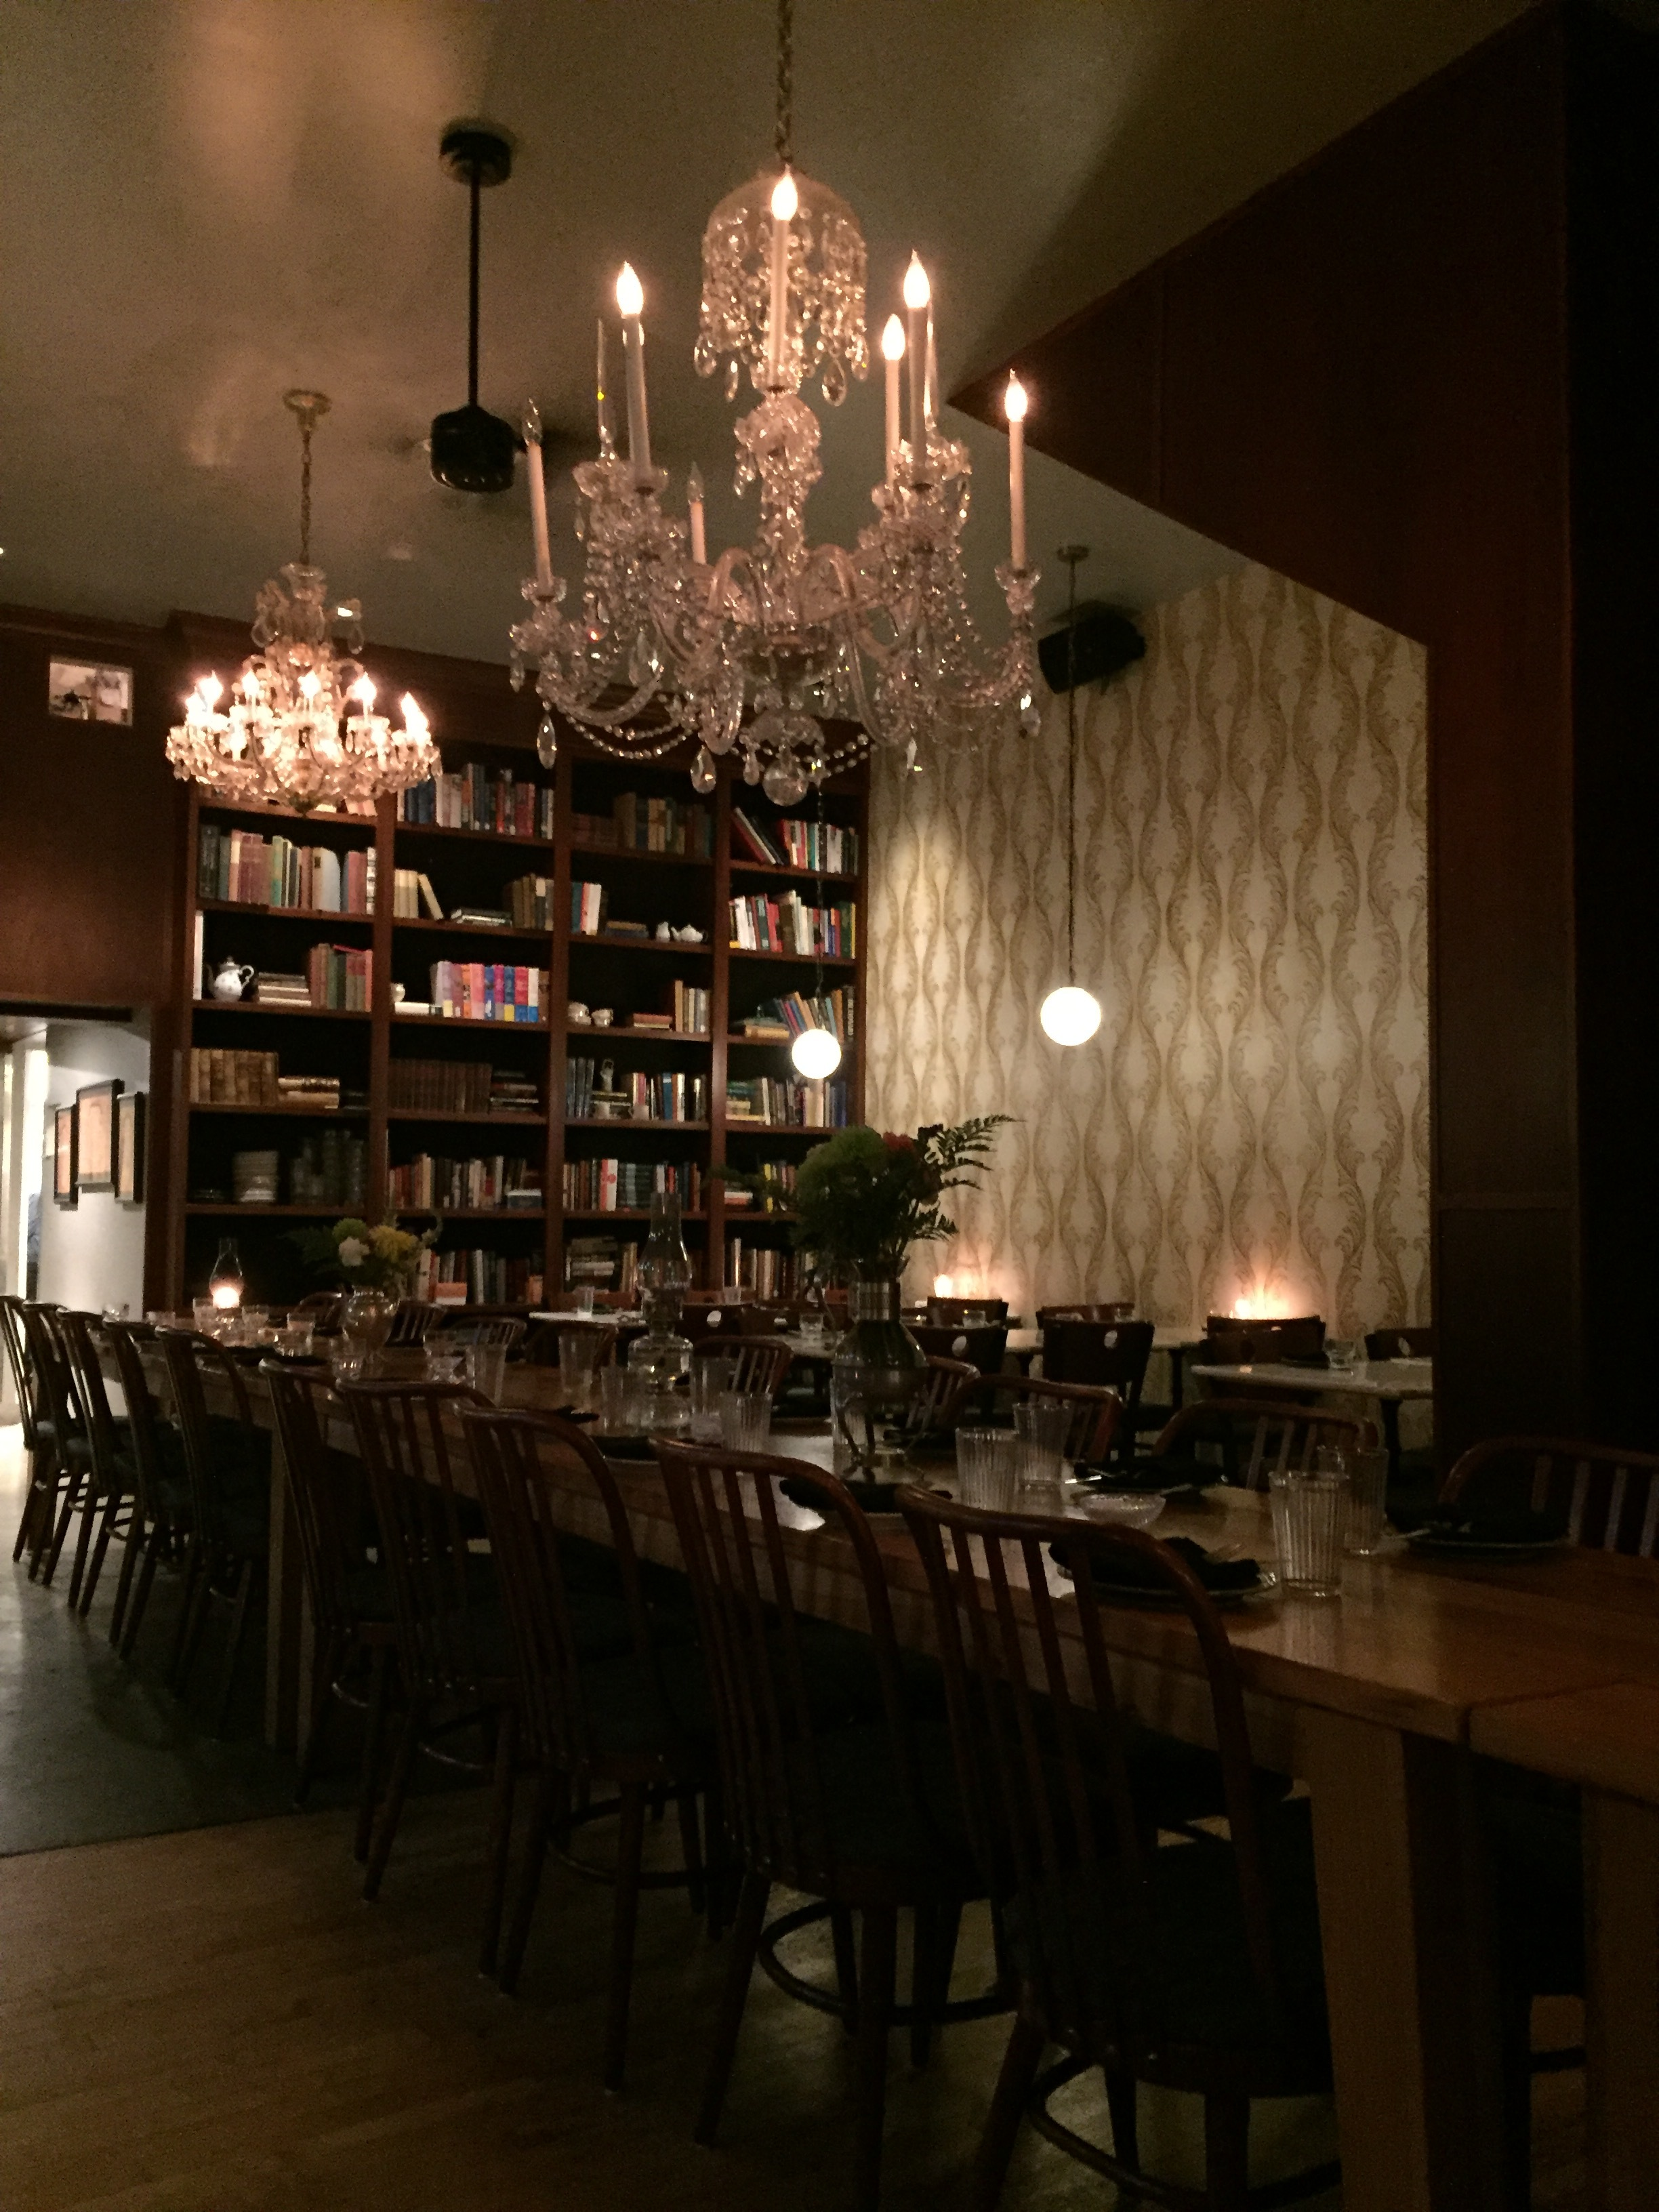 [image description: Inside Asterisk Supper Club. There's a long, picnic style table that could seat ~30 people. The table has vases with flowers on top, as well as clear glasses and small green plates. Behind the table are more floor-to-ceiling bookshelves. Dangling orb lights and large chandeliers hang overhead. The one wall that's not covered in books is a creamy white color with a repeating gold brocade design.]